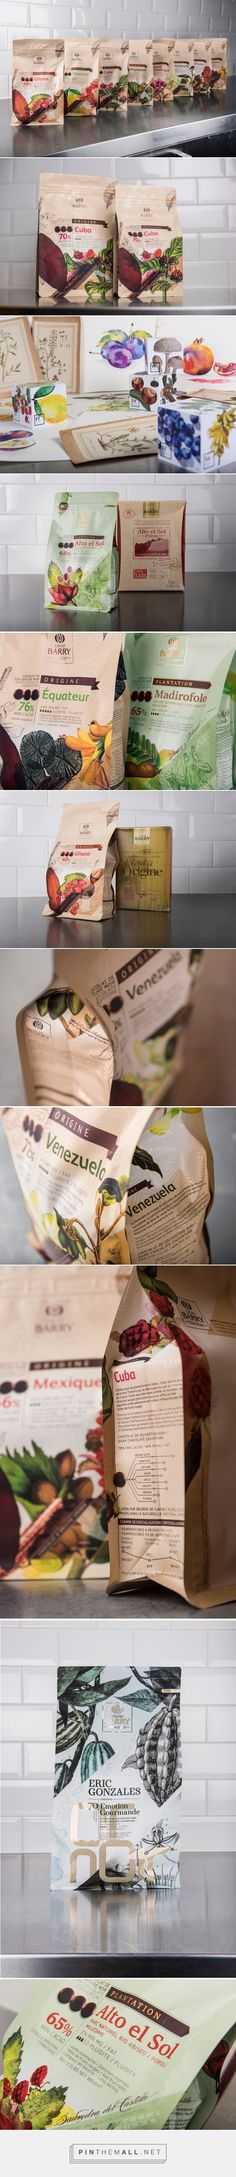 Cacao Barry packaging designed by DesignBridge ​ - http://www.packagingoftheworld.com/2015/09/cacao-barry.html